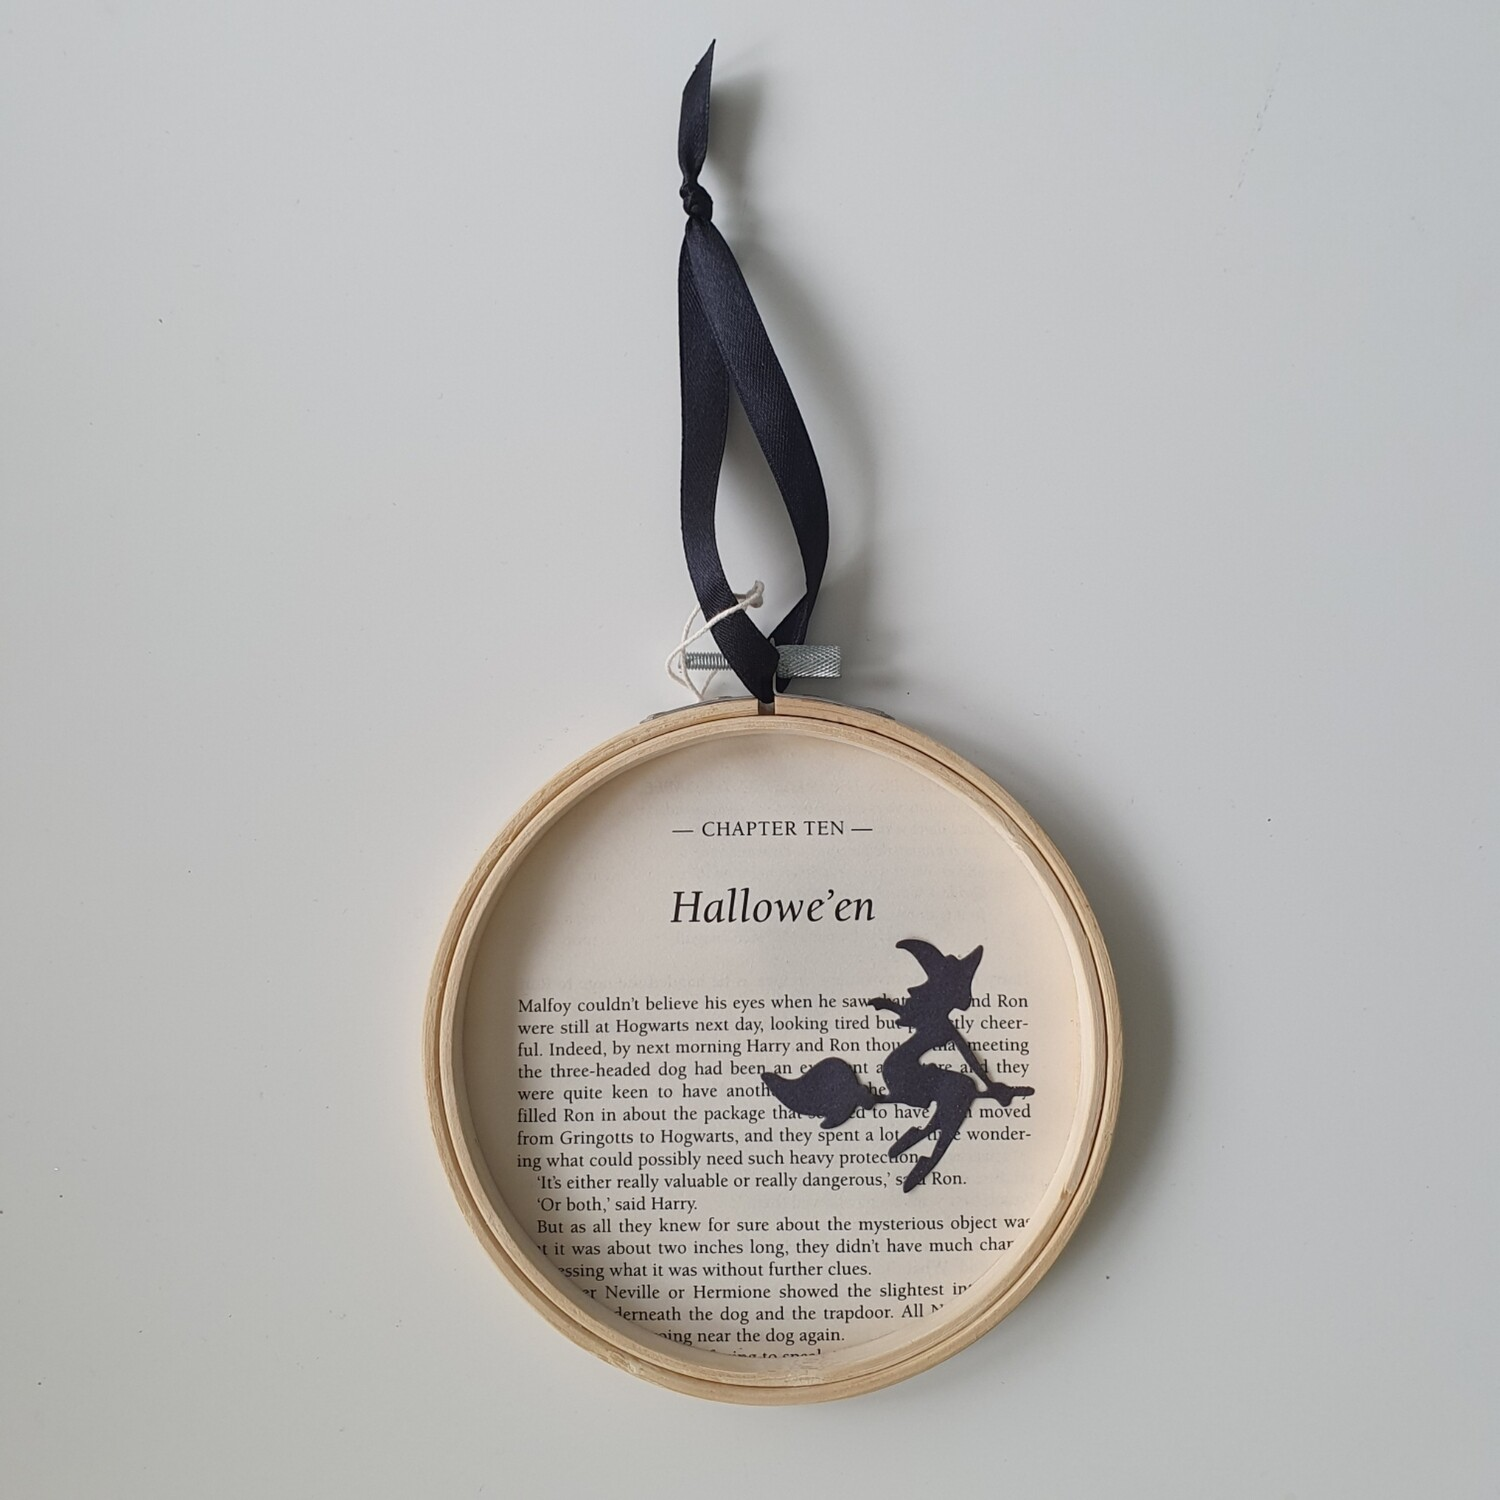 Harry Potter Halloween book art made from original book pages from The Philosopher's Stone - READY TO SHIP